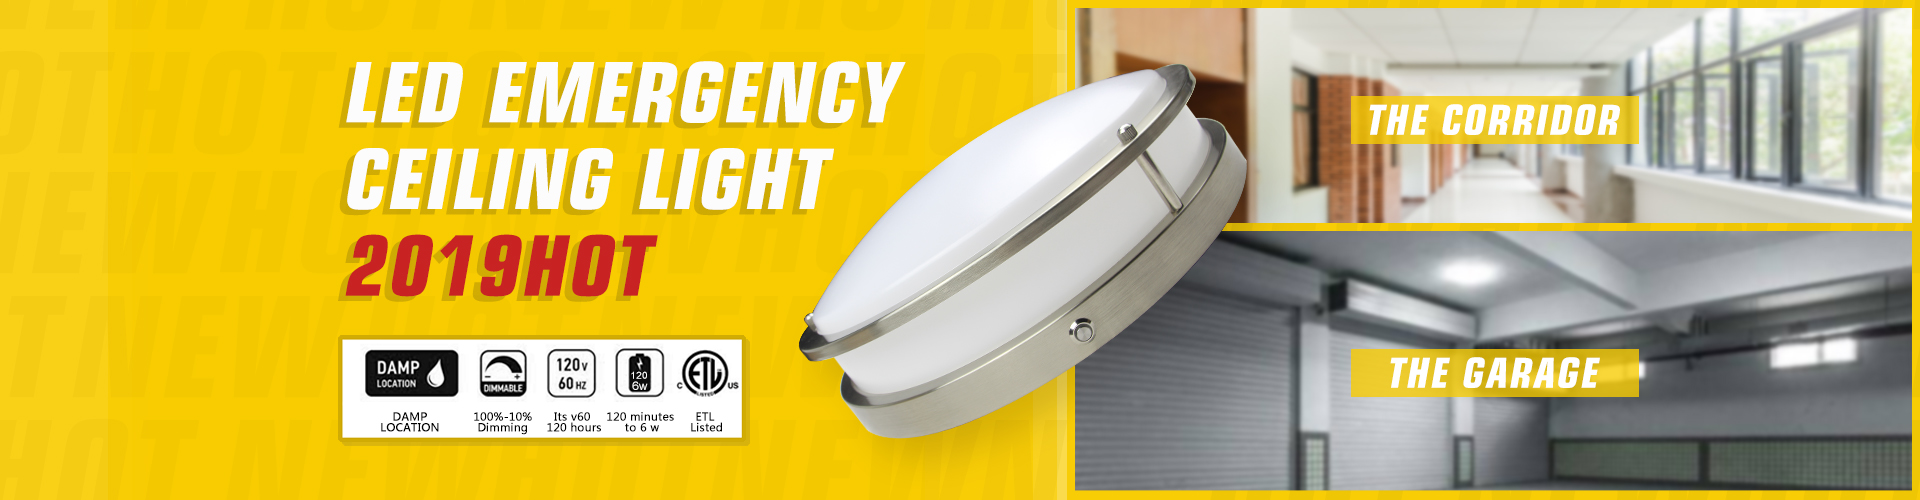 Worebst UL Led Emegency Led Ceiling Light